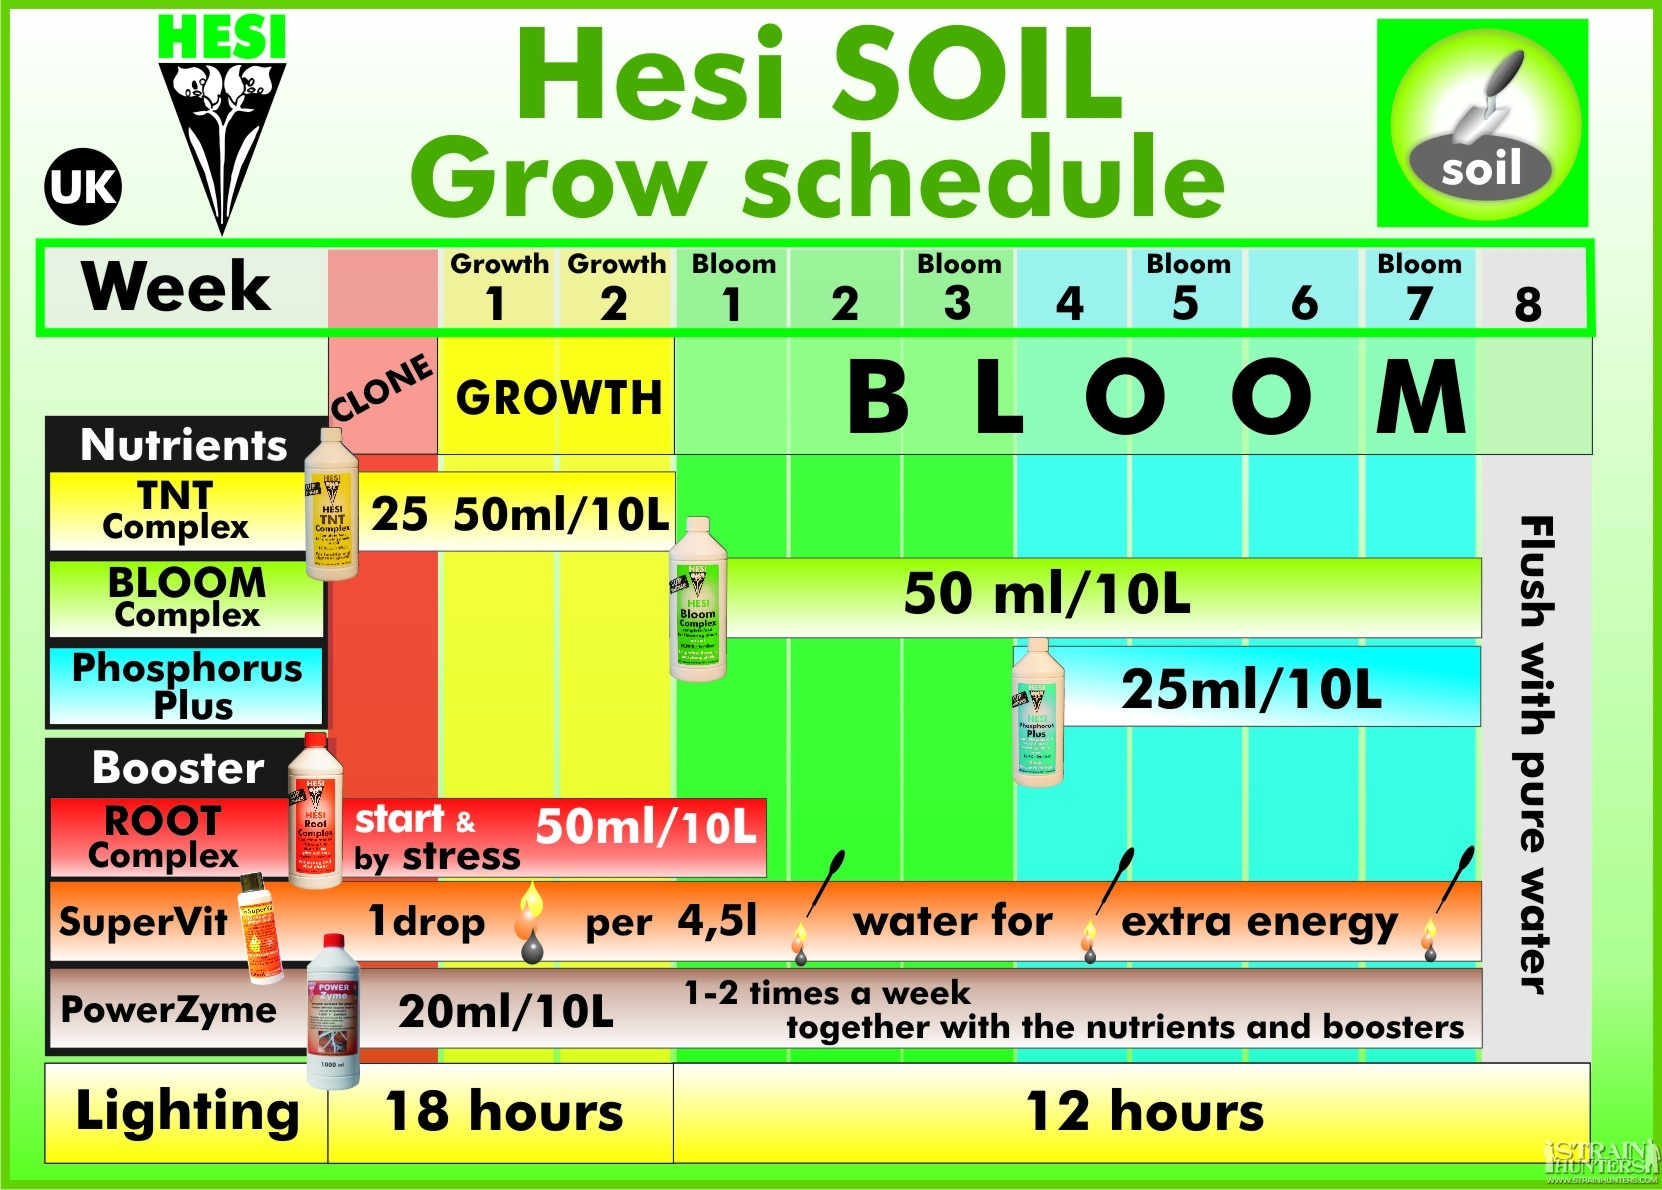 Hesi Schedule for Autoflower in a Capillary System - Soil